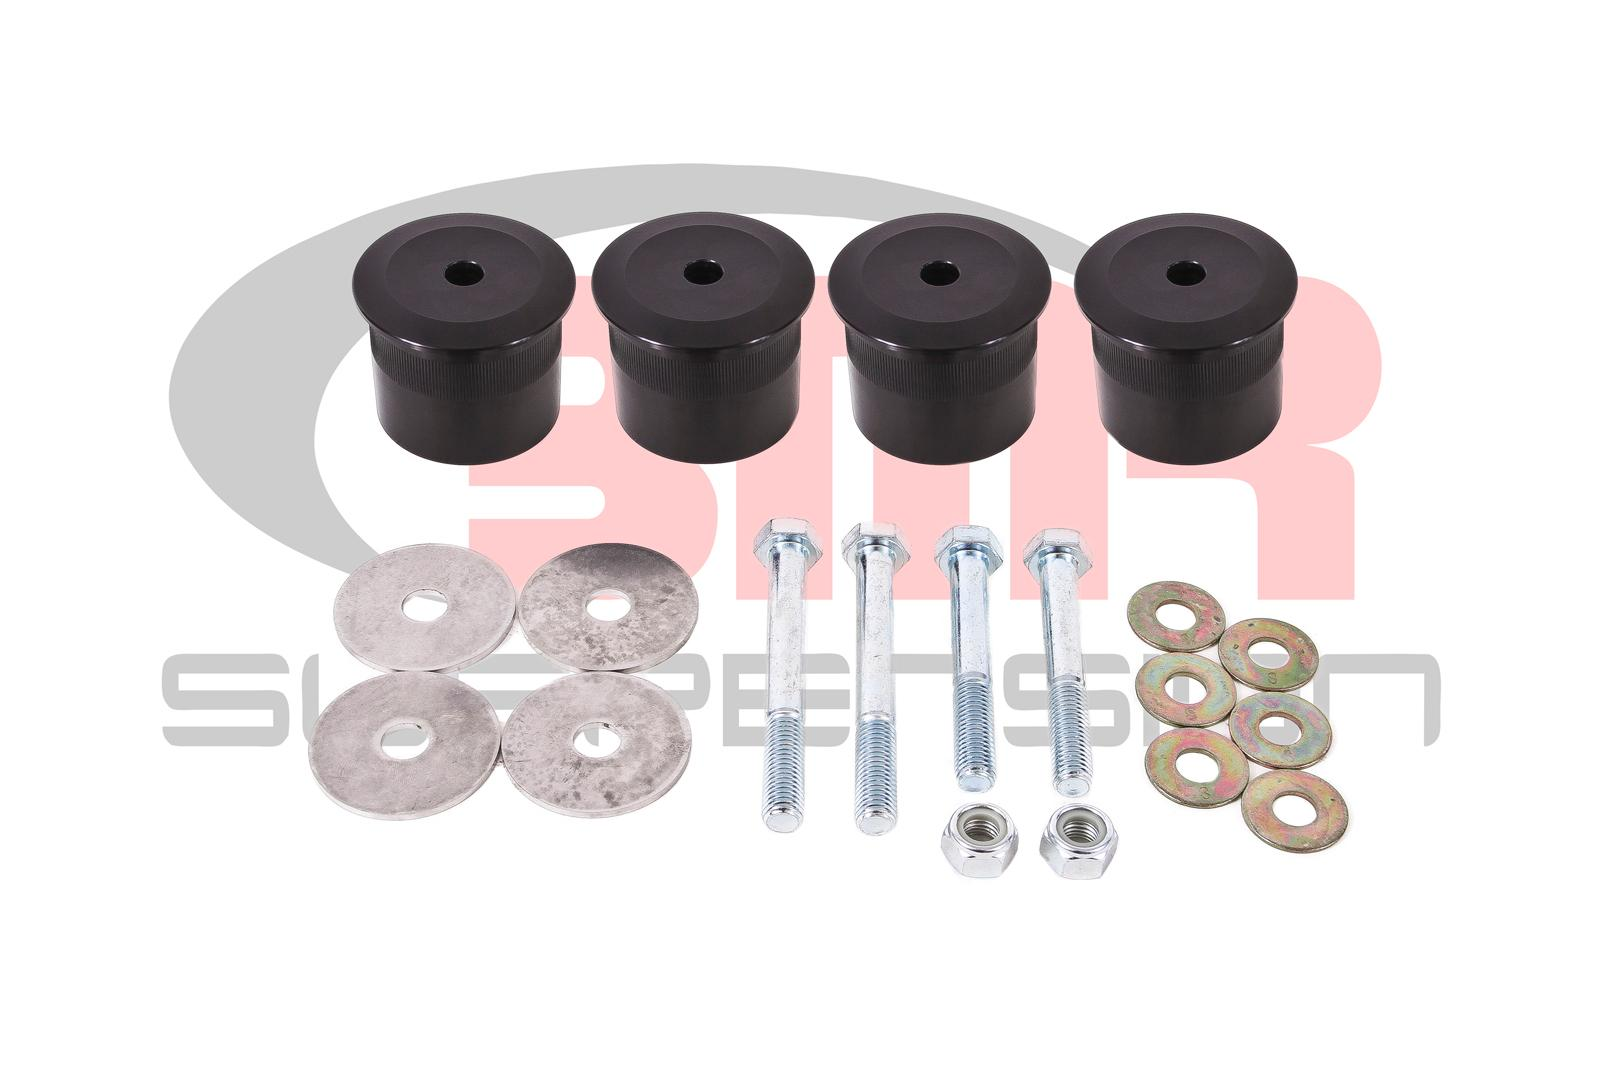 2015+ Ford Mustang BMR Suspension Rear Differential Billet Aluminum Bushing Kit